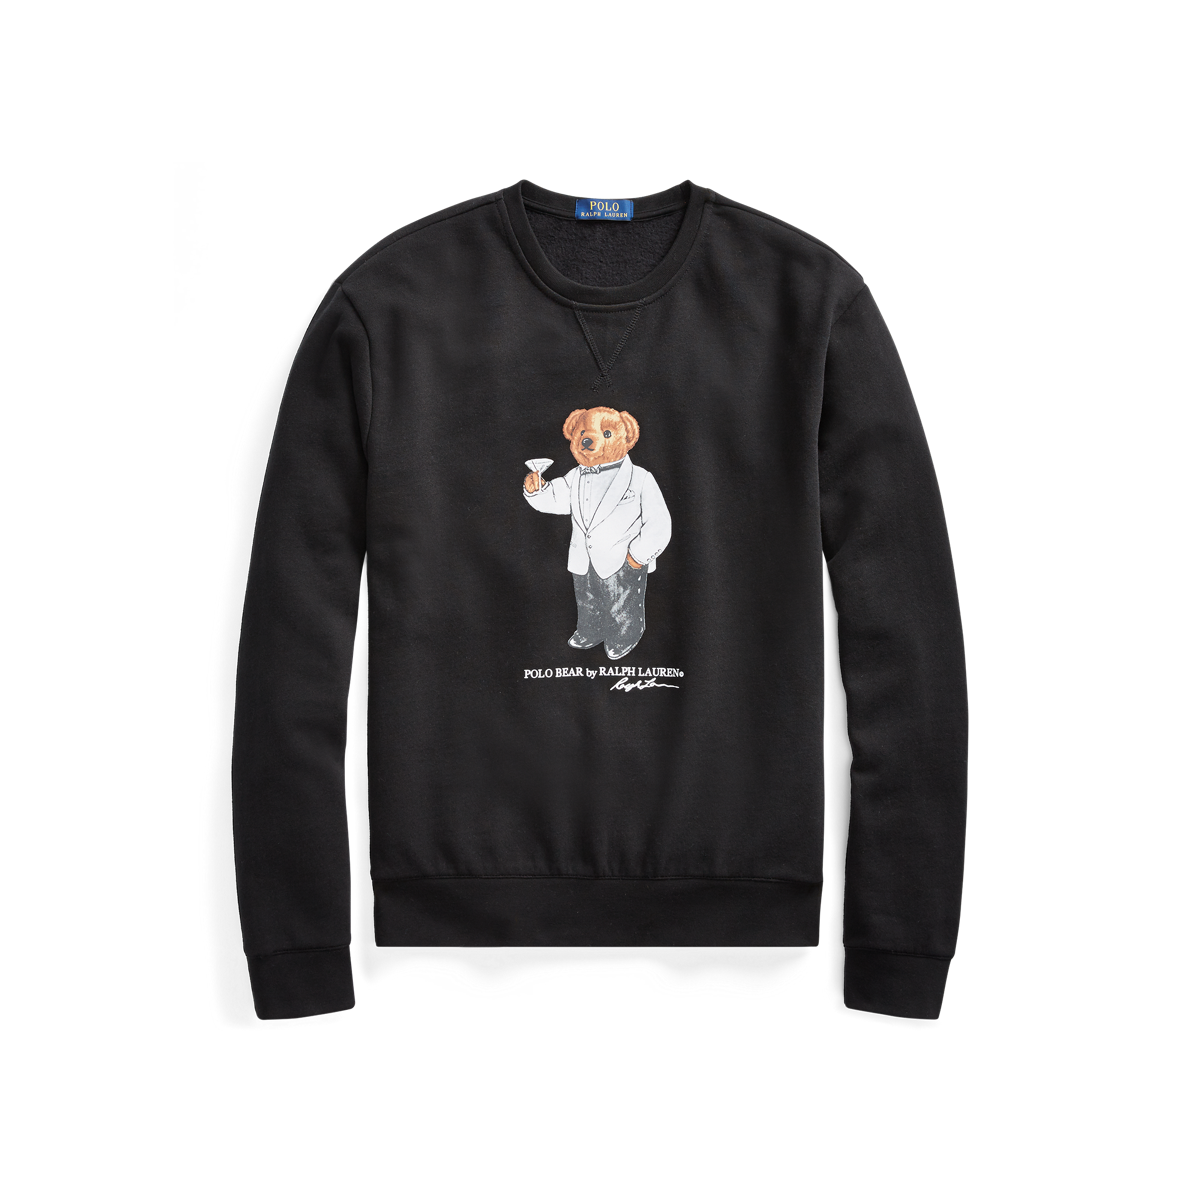 Lauren Fr Bear Lauren Martini Martini SweatshirtRalph Bear Bear SweatshirtRalph SweatshirtRalph Martini Fr Lauren W2IDEH9